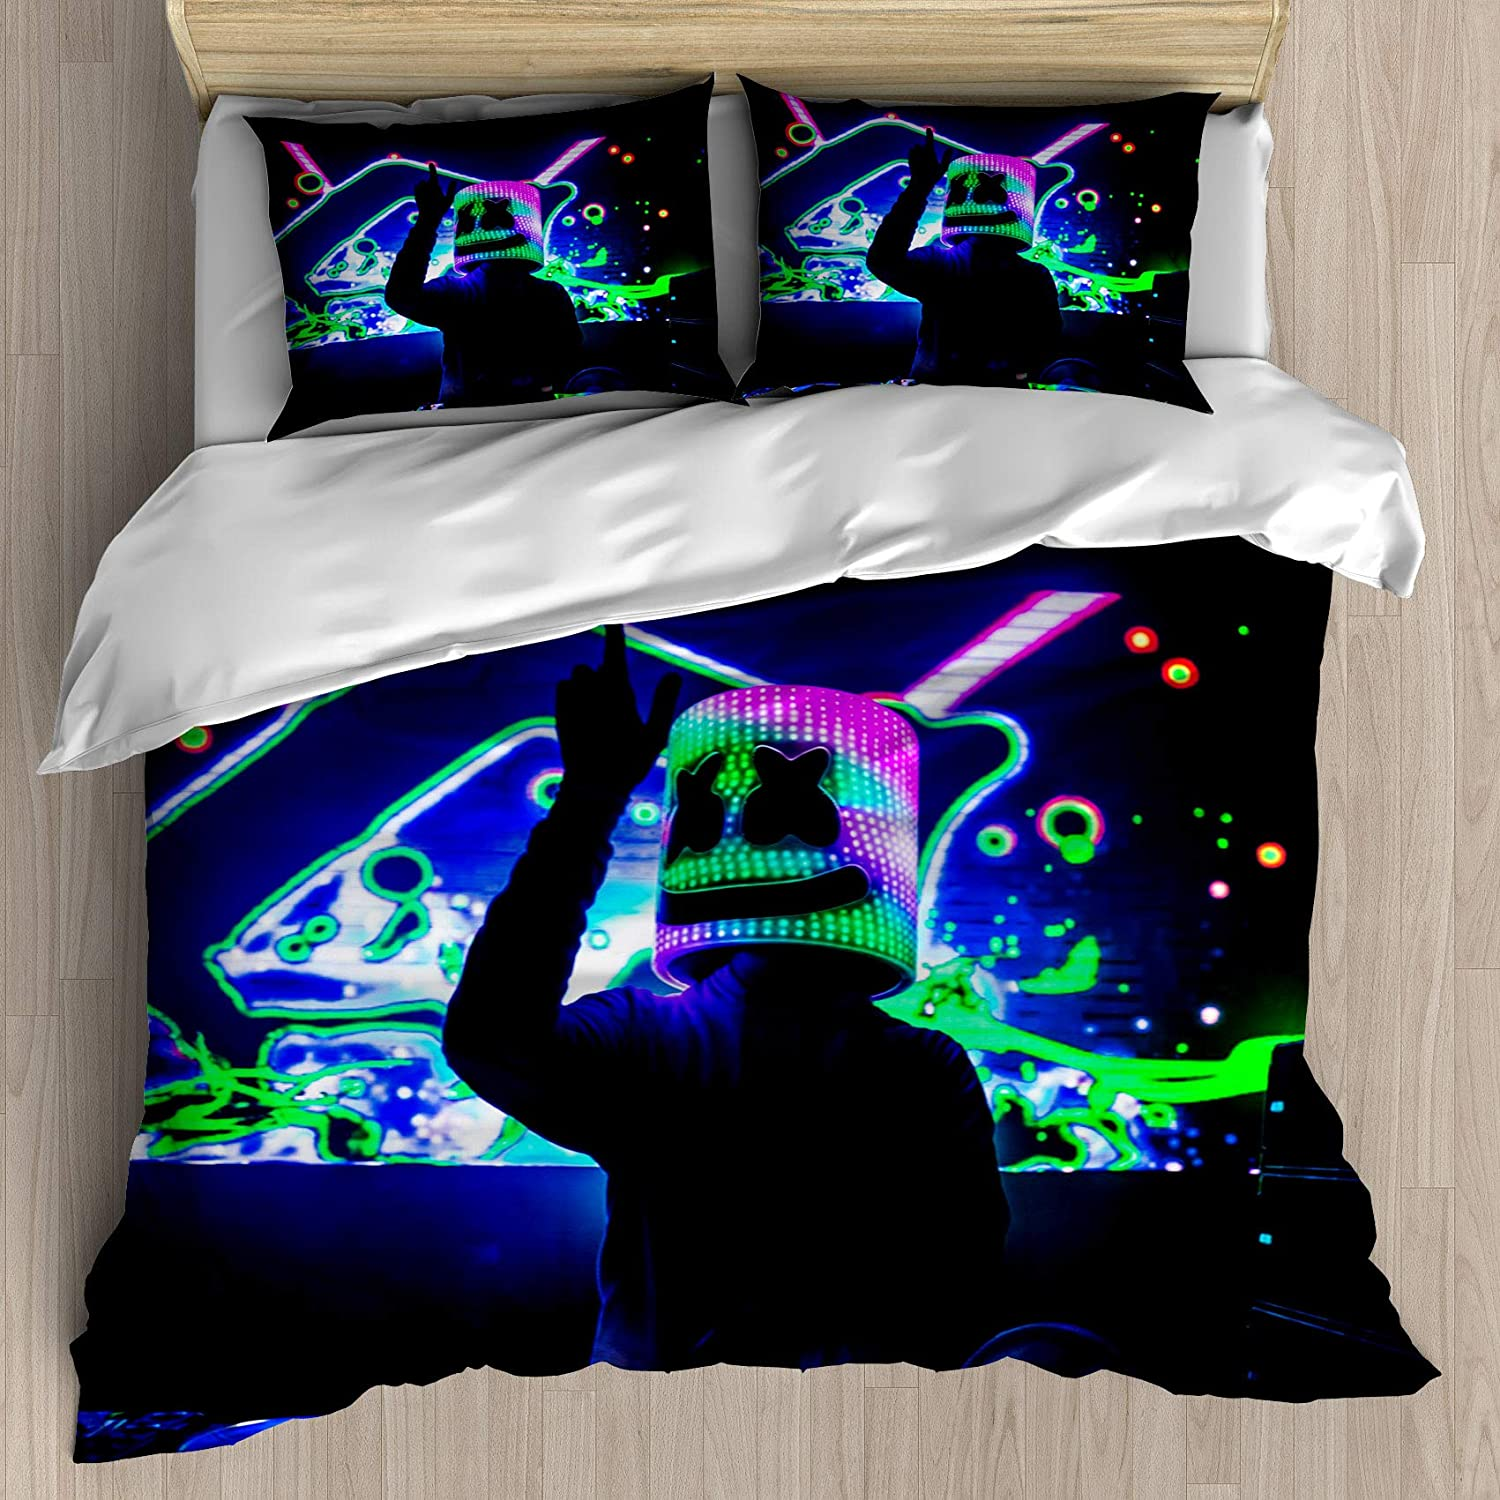 FEIDANNO DJ Marshmallow Duvet Cover Set Twin Size,DJ and Gorgeous Stage Live Print,Decorative 2 Piece Bedding Set with 1 Pillow Sham.(Multicolor,Twin)